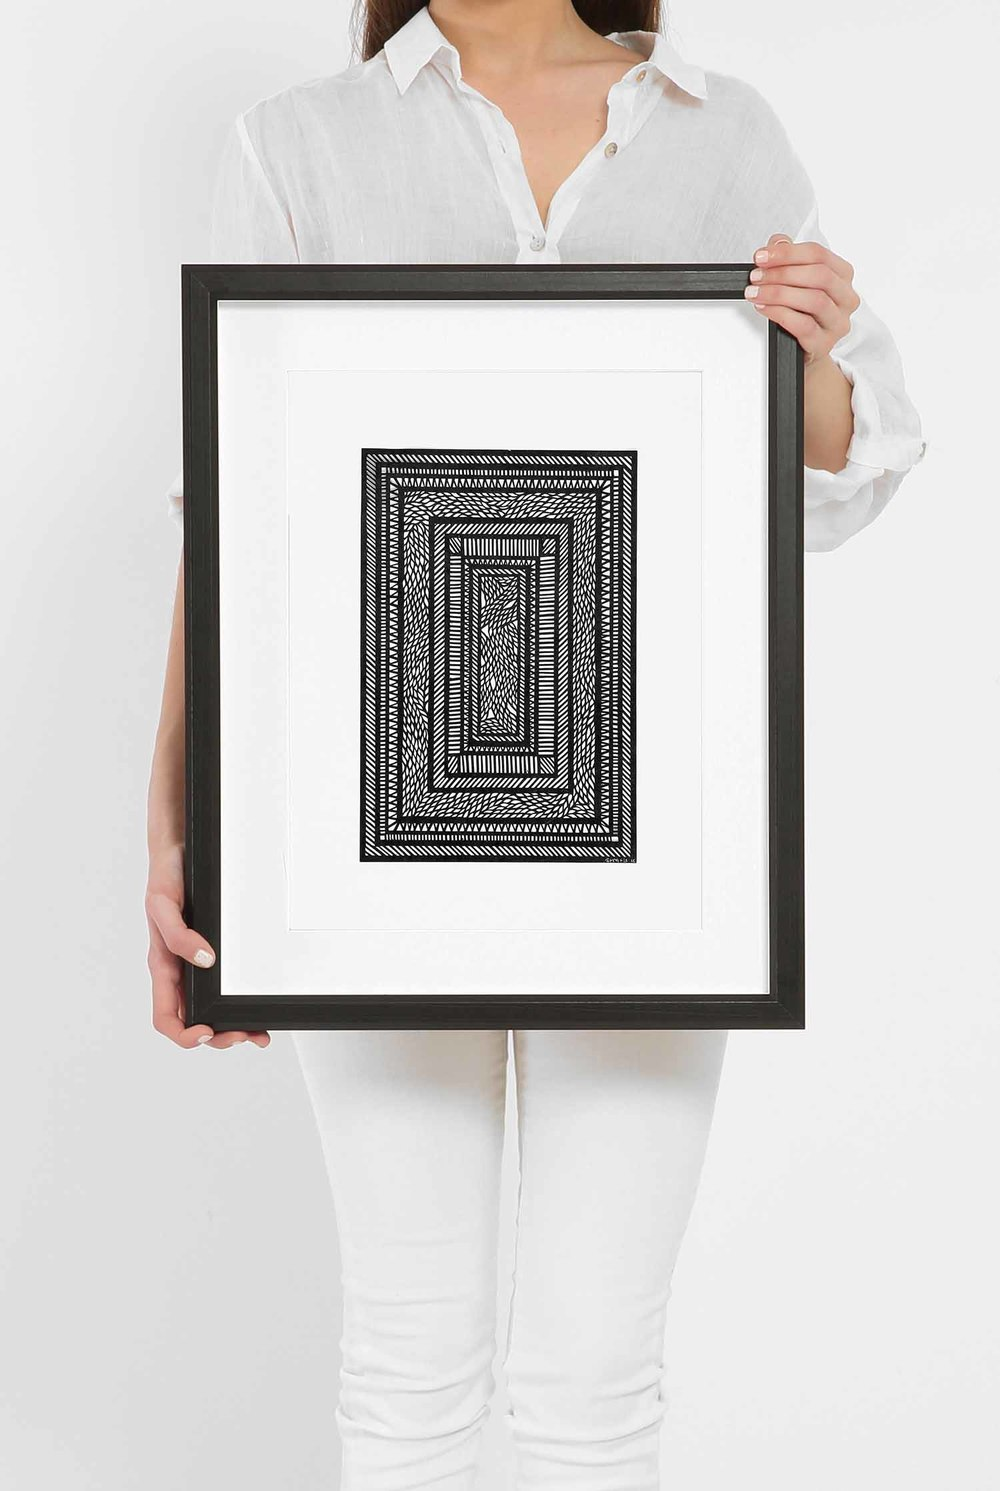 Untitled White Geometrical Medium_Framed.jpg